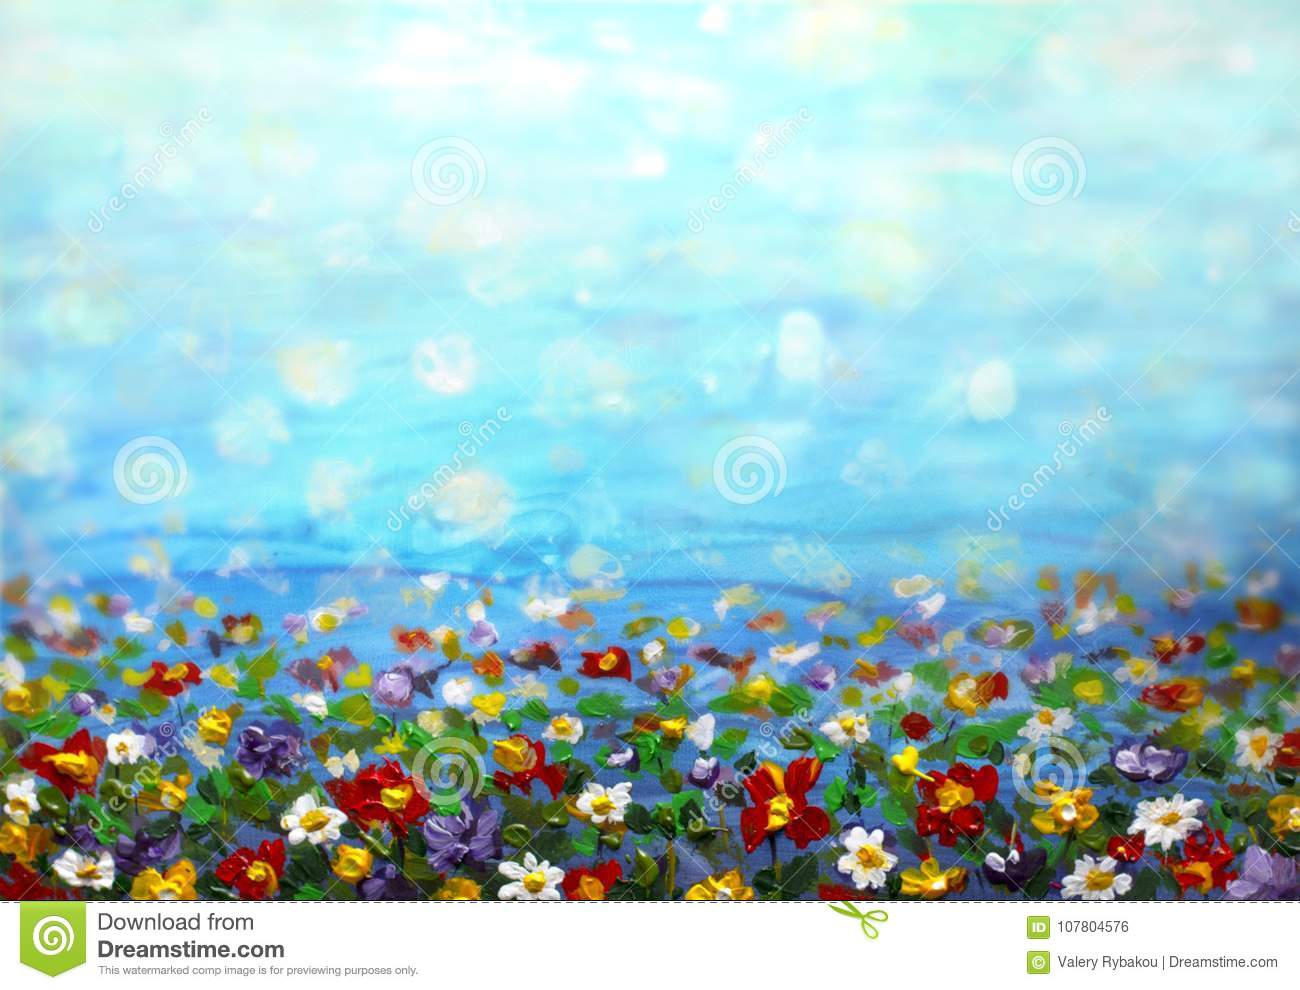 Painting Purple Cosmos Flower White Daisy Cornflower Wildflower Flowers Meadow Green Field Paintings Hand Painted Floral And Stock Photo Image Of Spring Texture 107804576